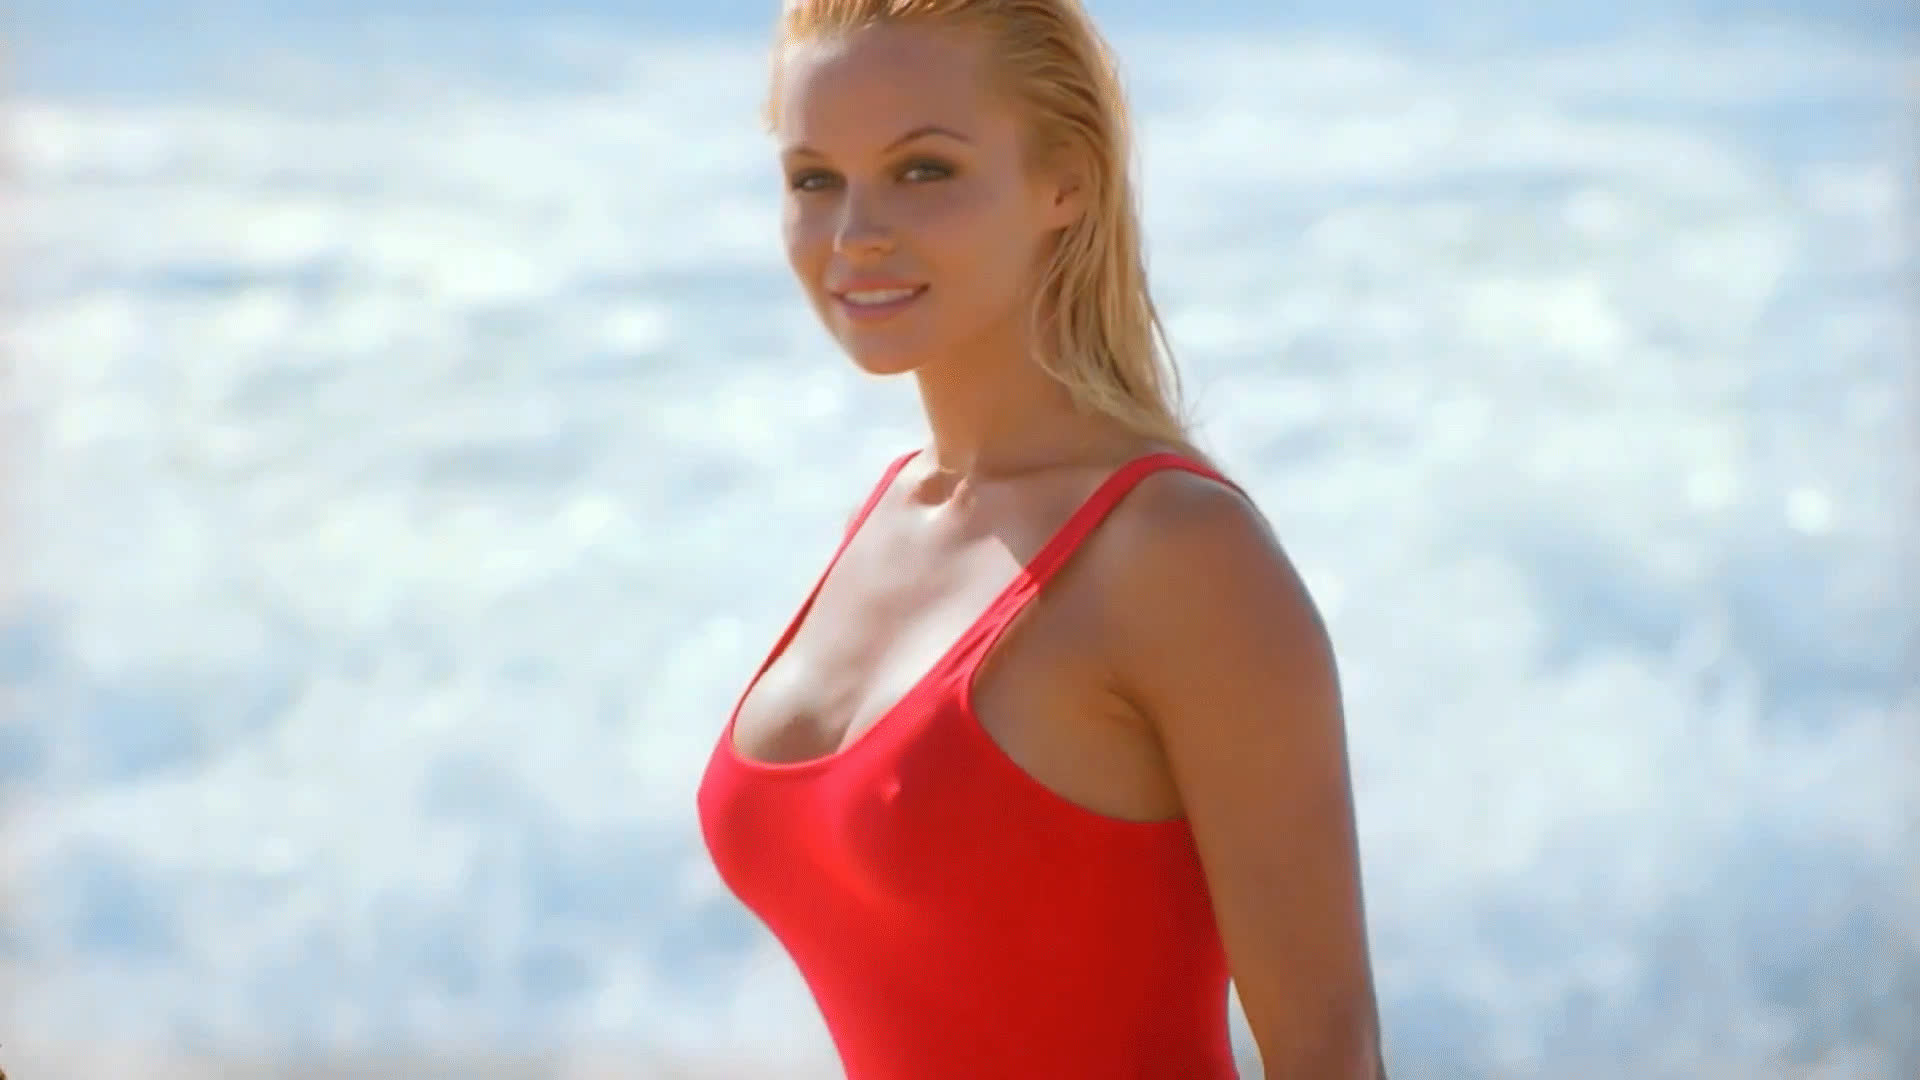 baywatch, celebs, pam anderson, pamela anderson, Pamela Anderson GIFs